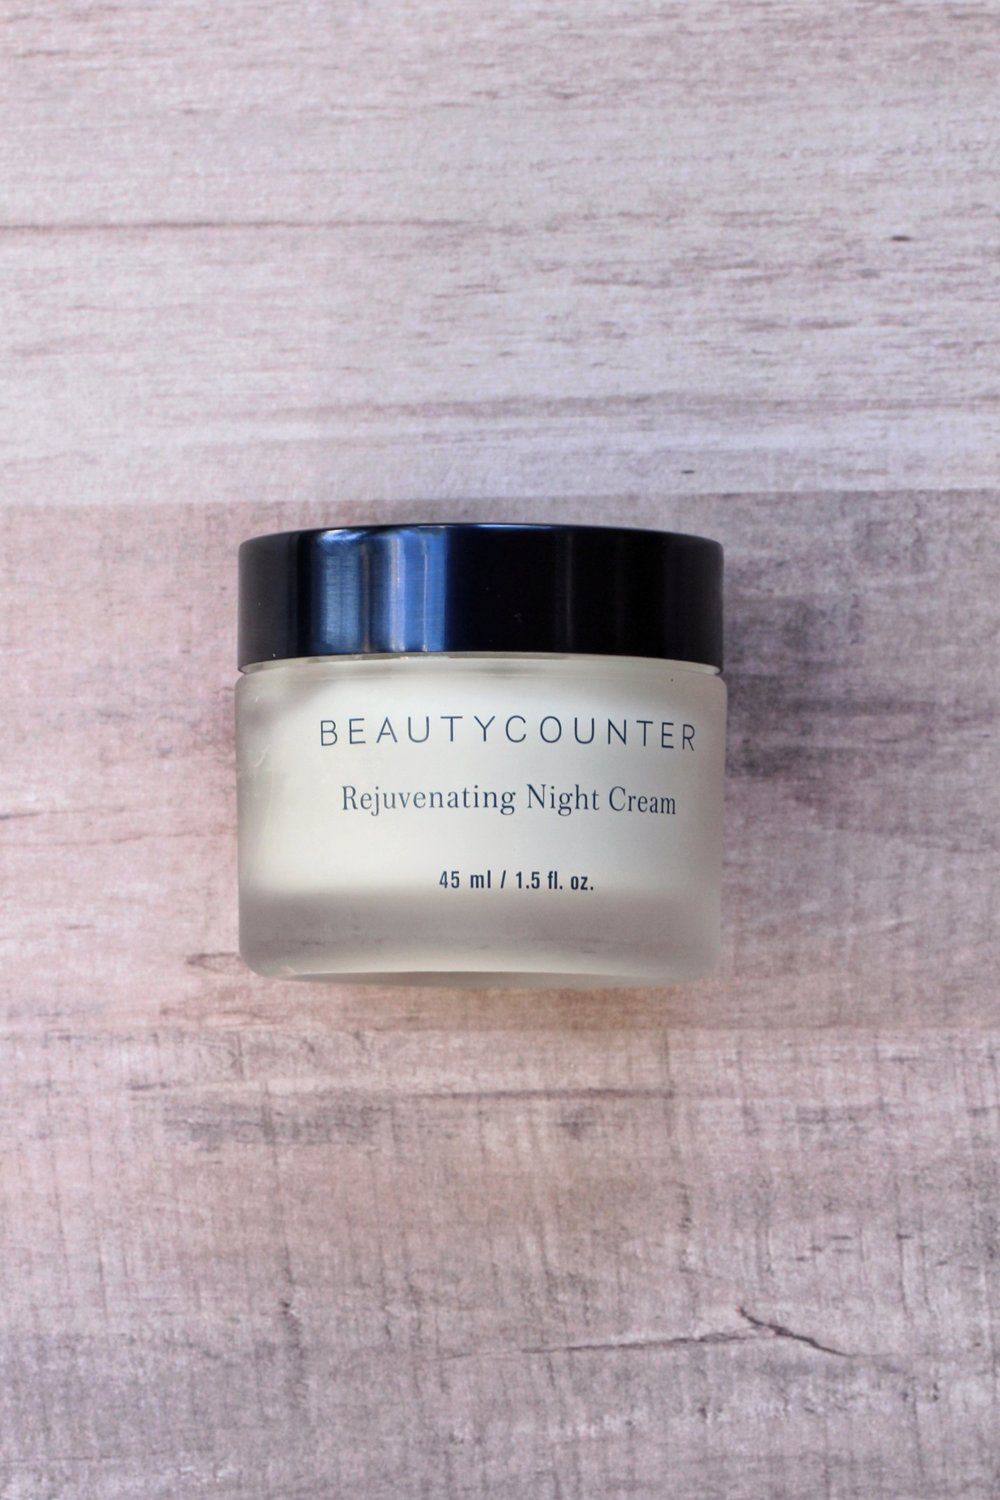 An honest and non biased Beauty Counter skincare review from a mama that is NOT a Beauty Counter consultant!